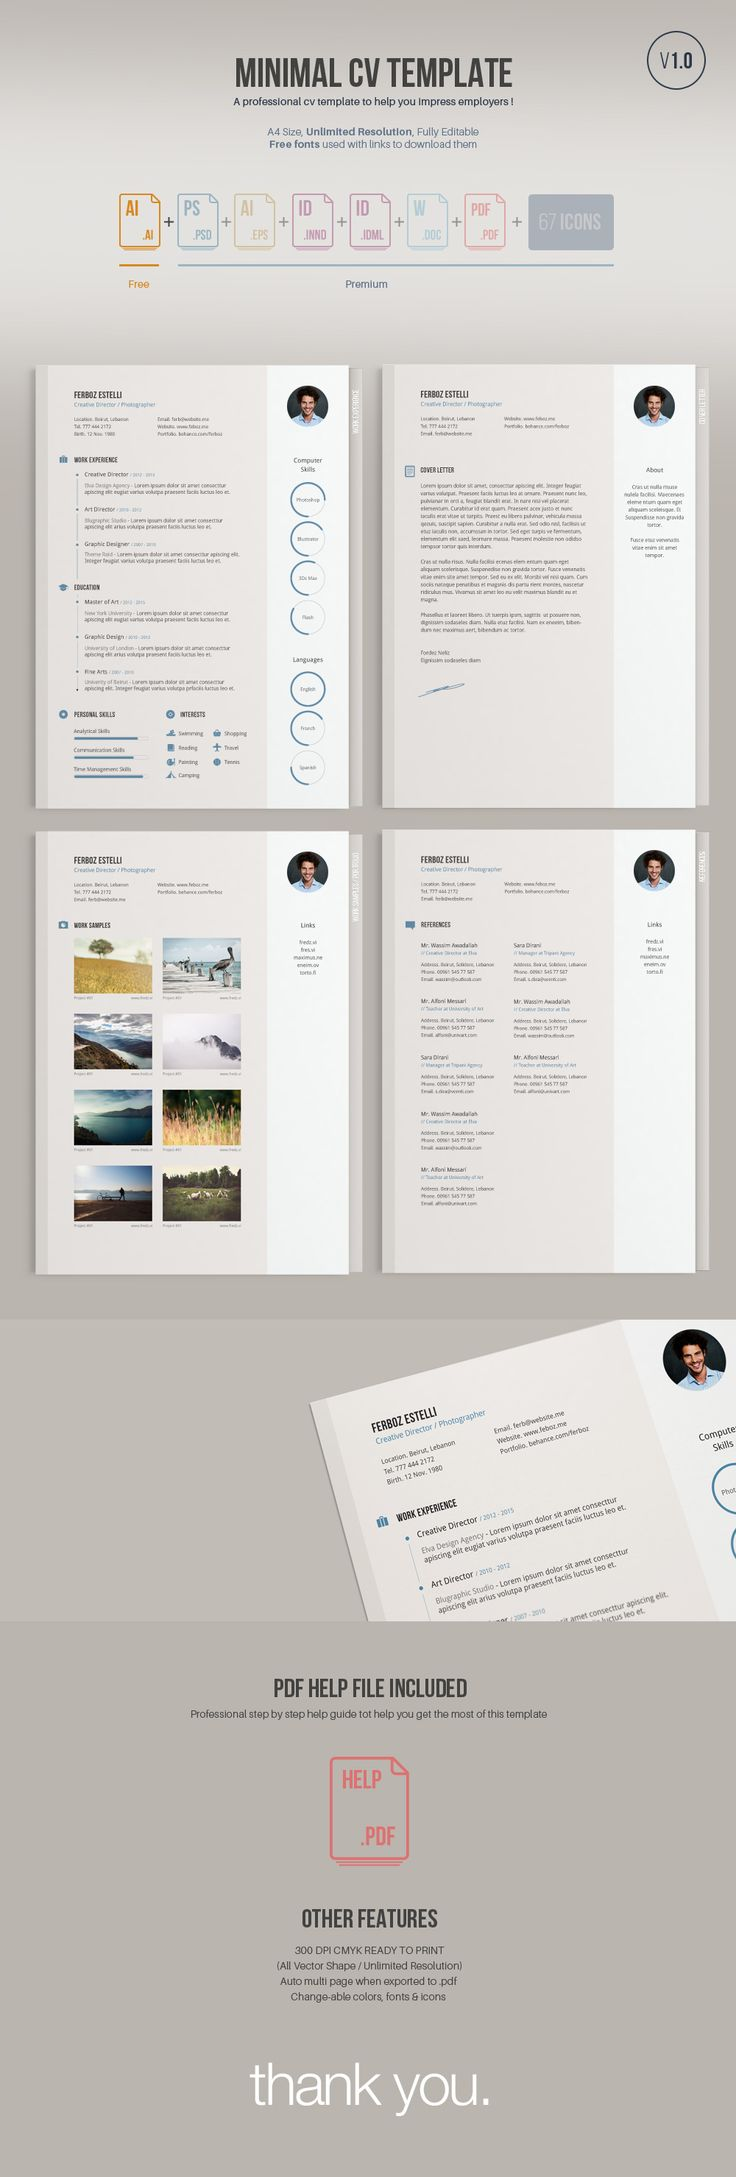 a minimal easy to edit free resume template free version comes in illustrator vector ai